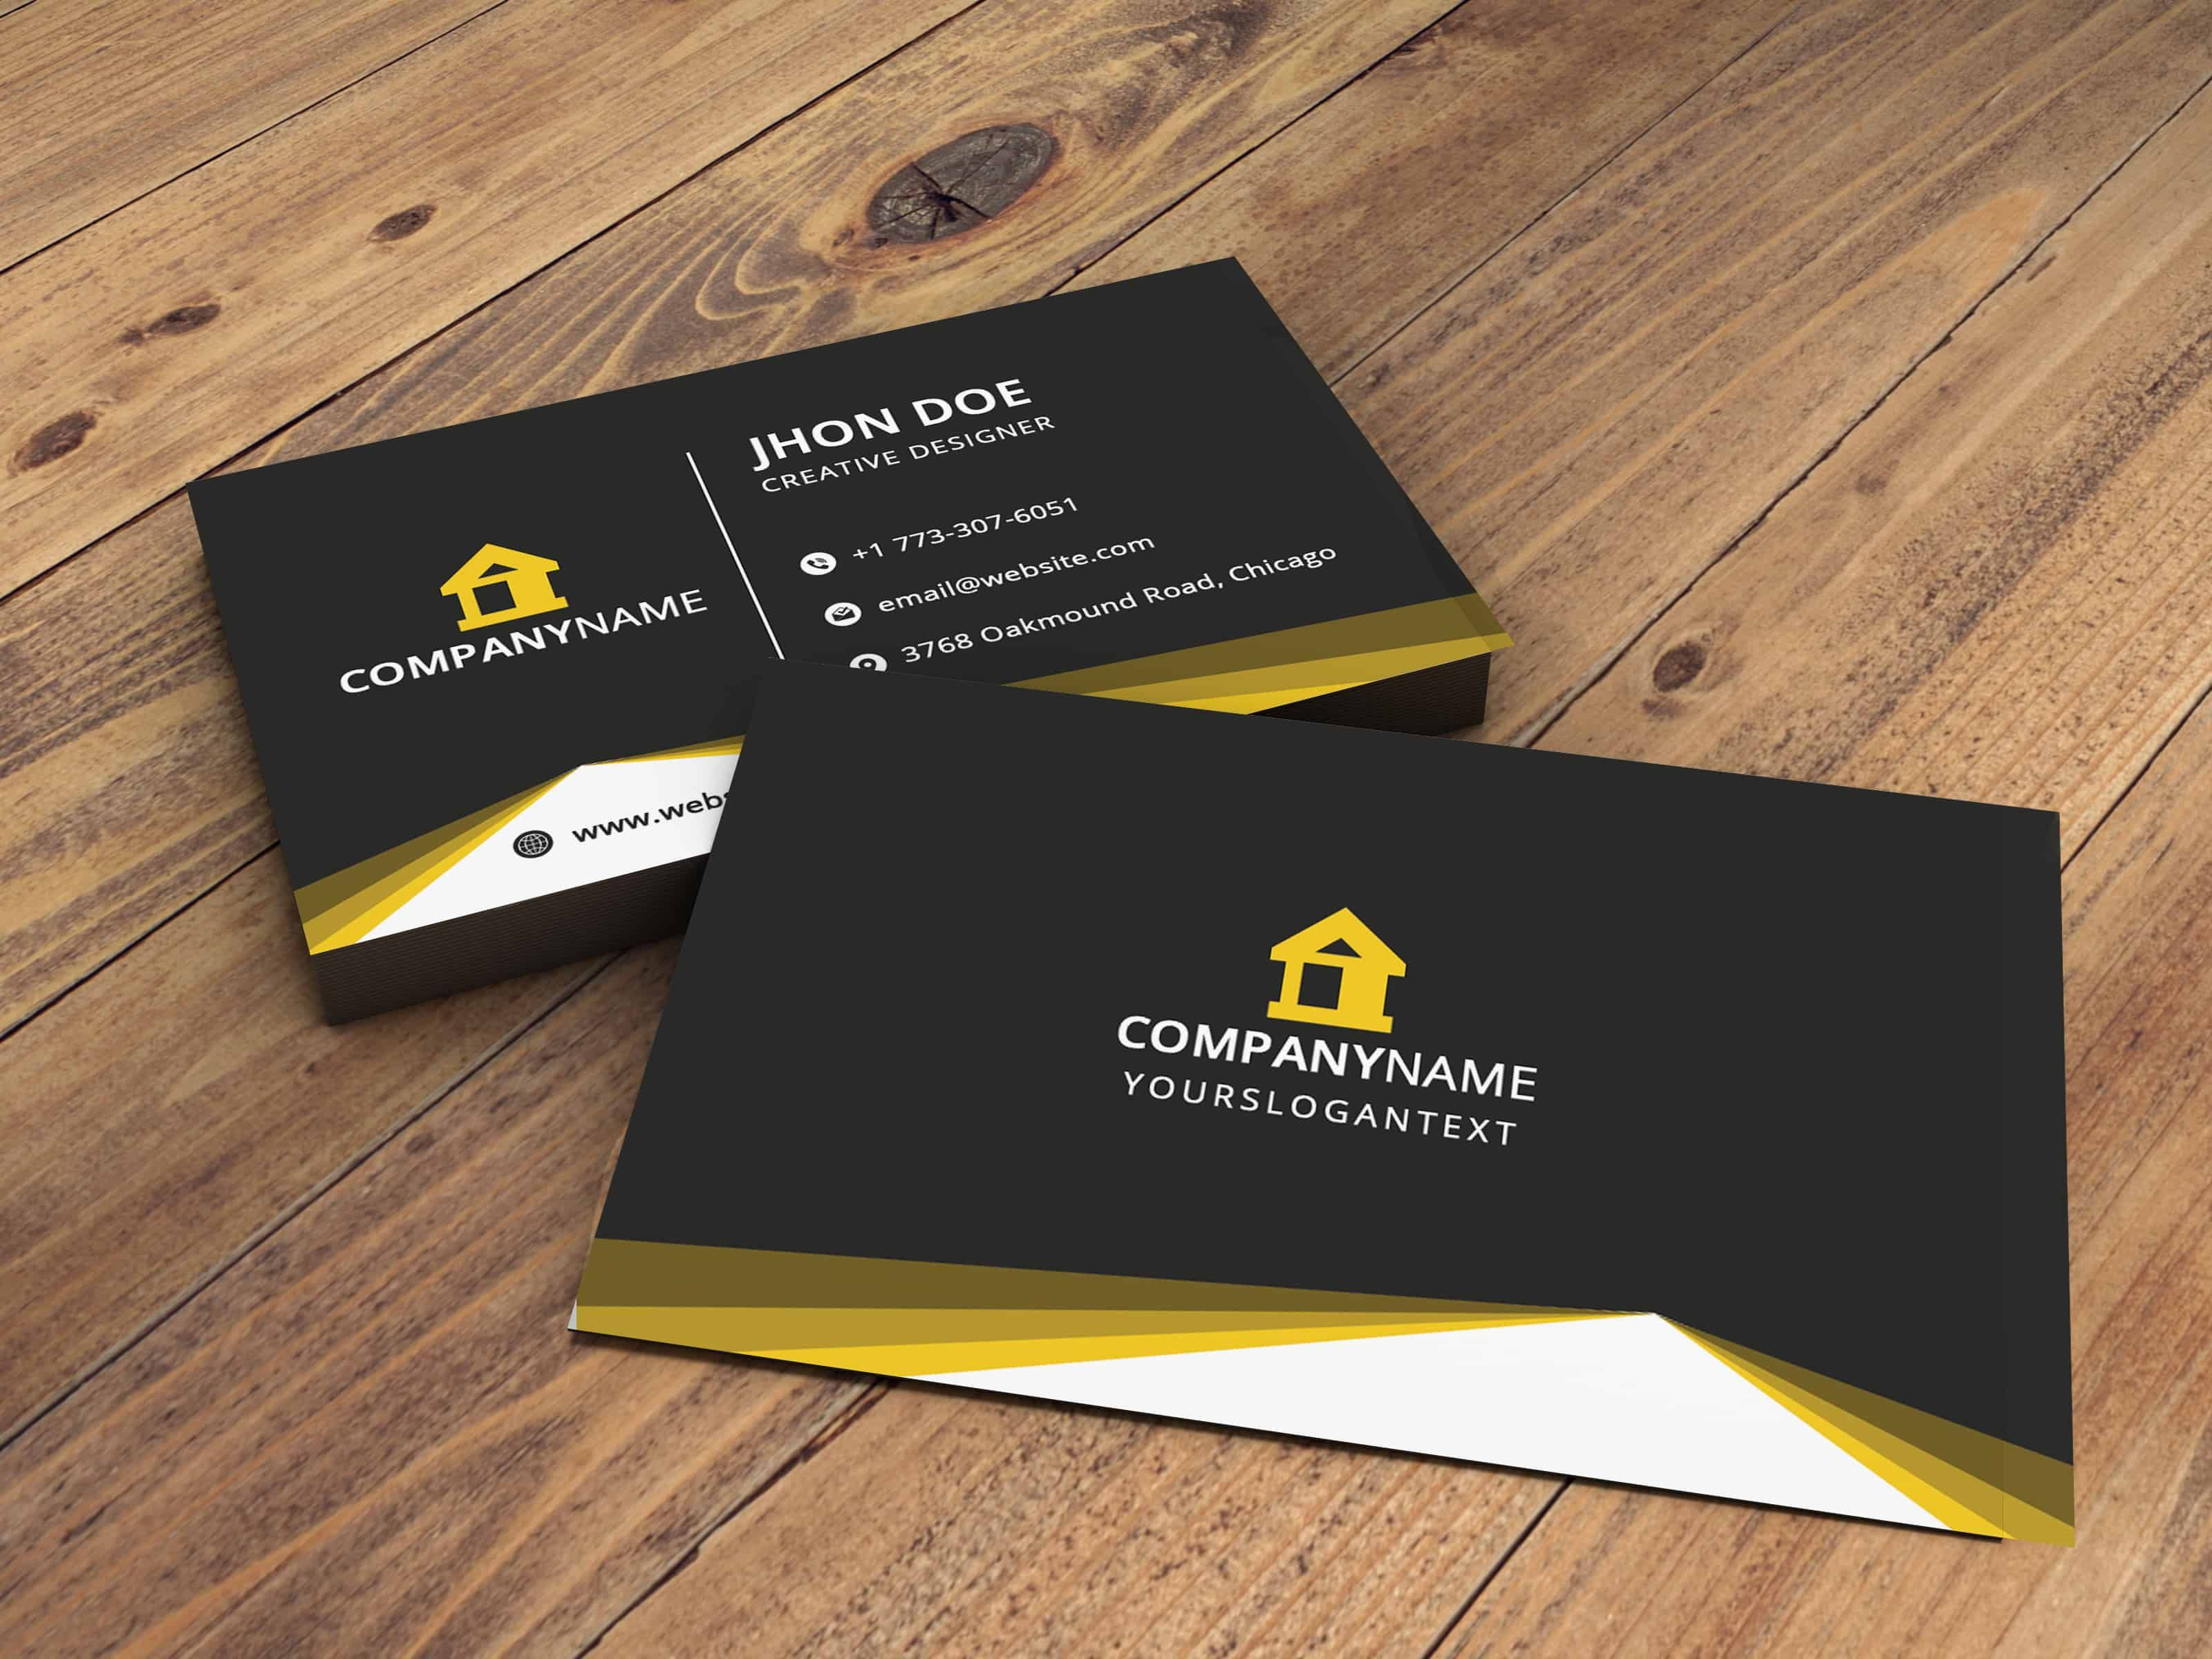 Creative Business Card Design Graphic Design Business Card Professional Business Card Design Free Business Card Design